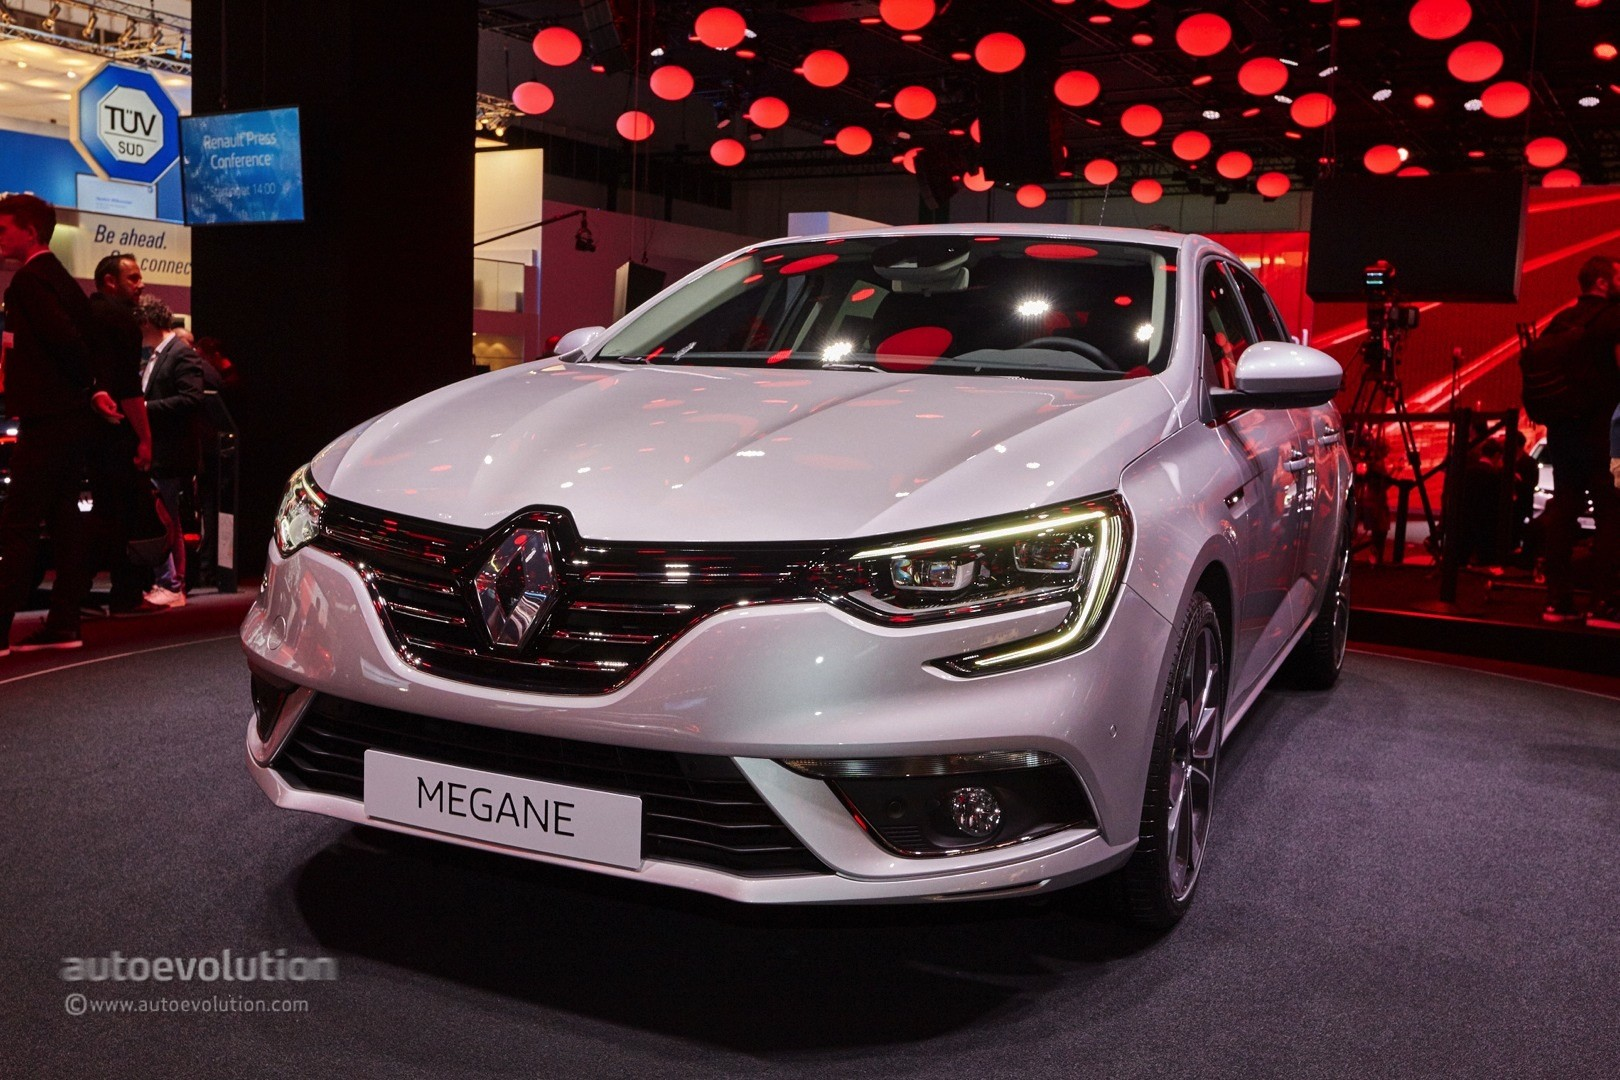 2016 Opel Astra 1 6 Cdti Vs Renault Megane 1 5 Dci Comparison Review